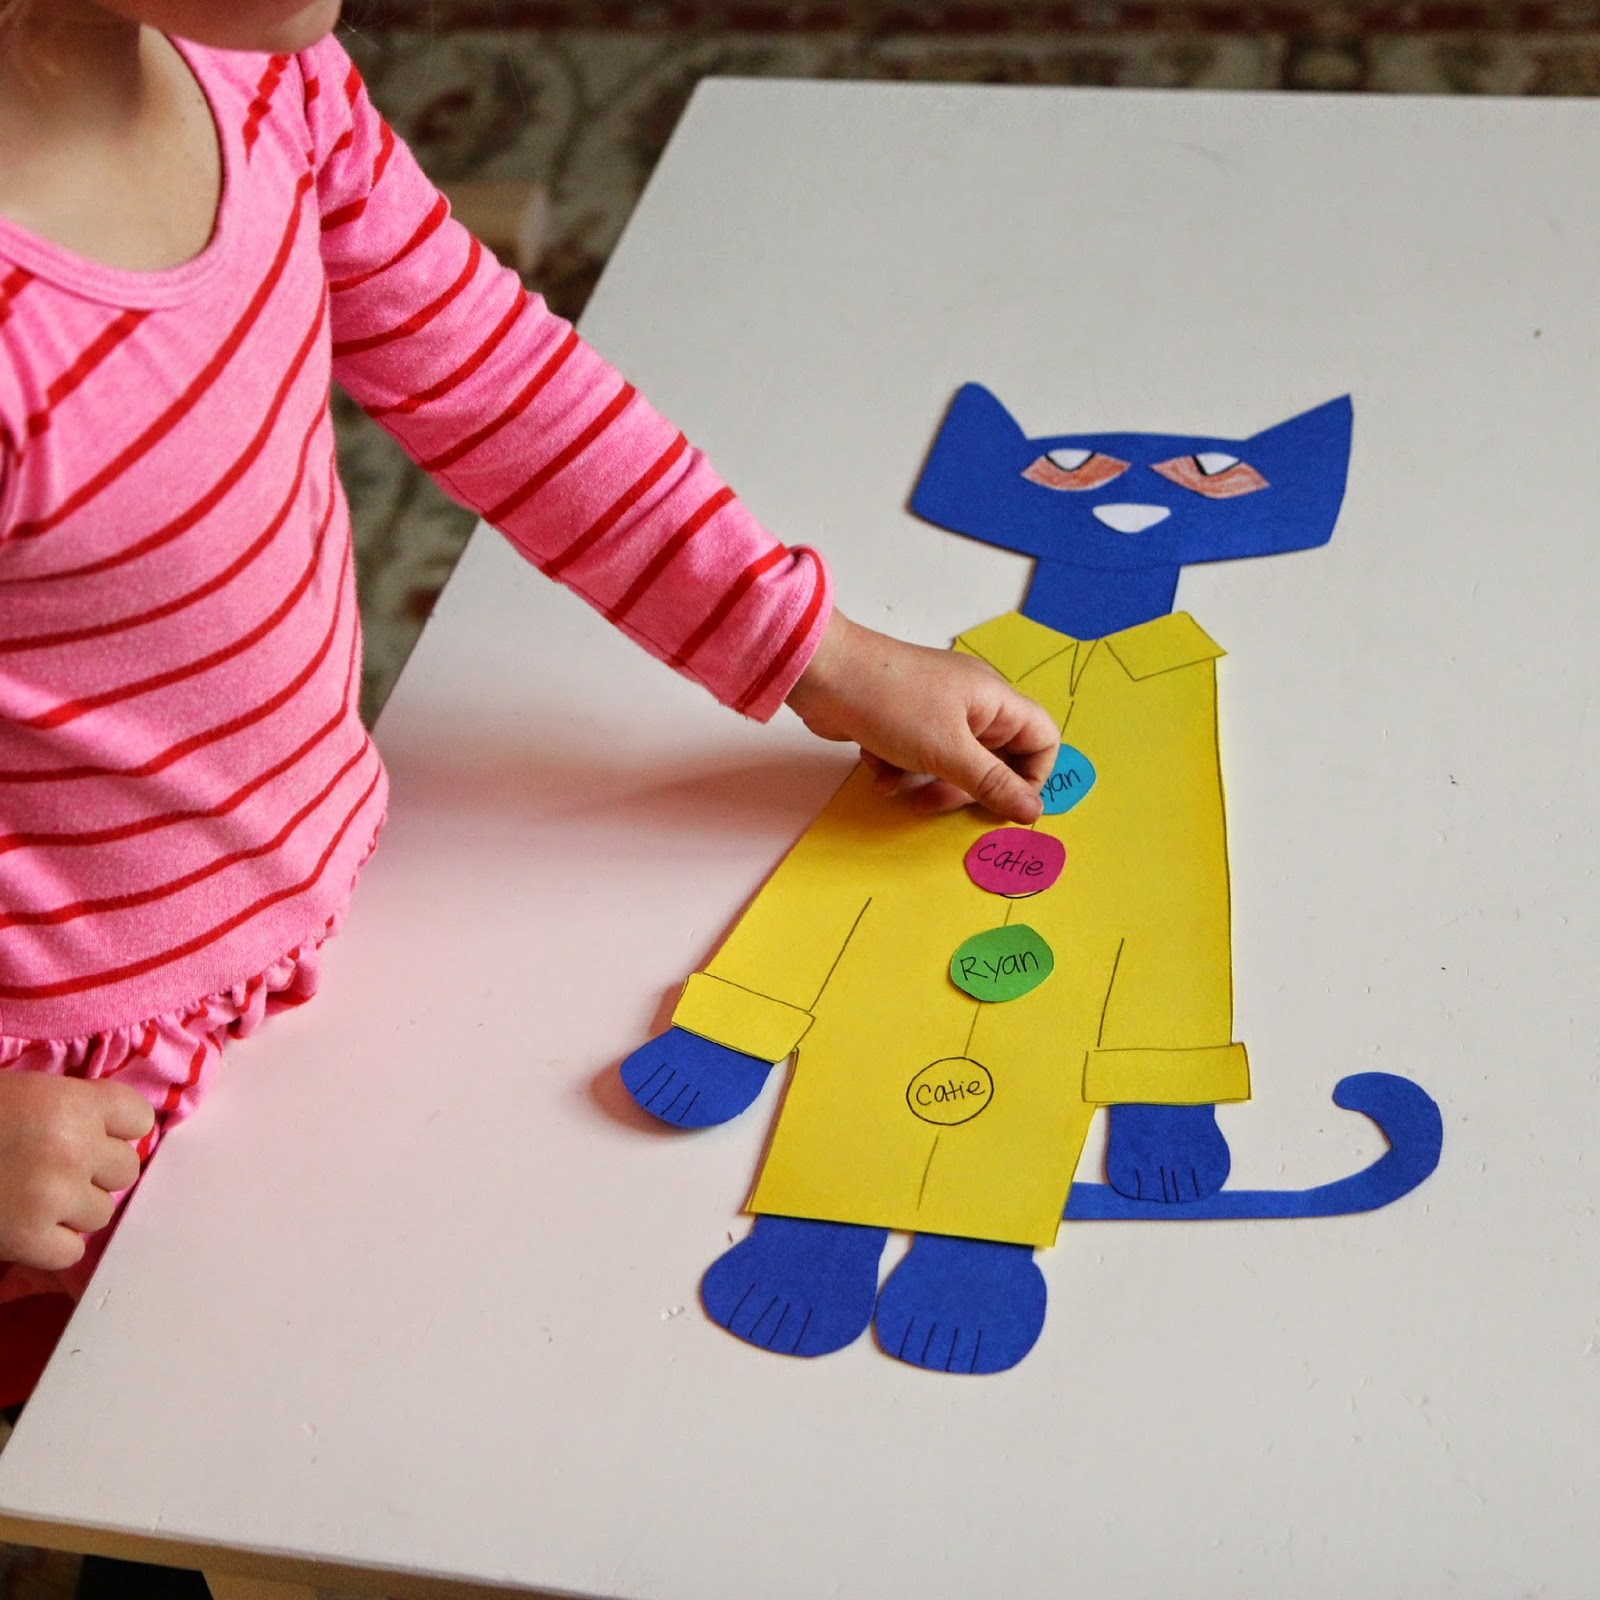 Toddler Approved Crafts and Activities To Do Along with Pete the